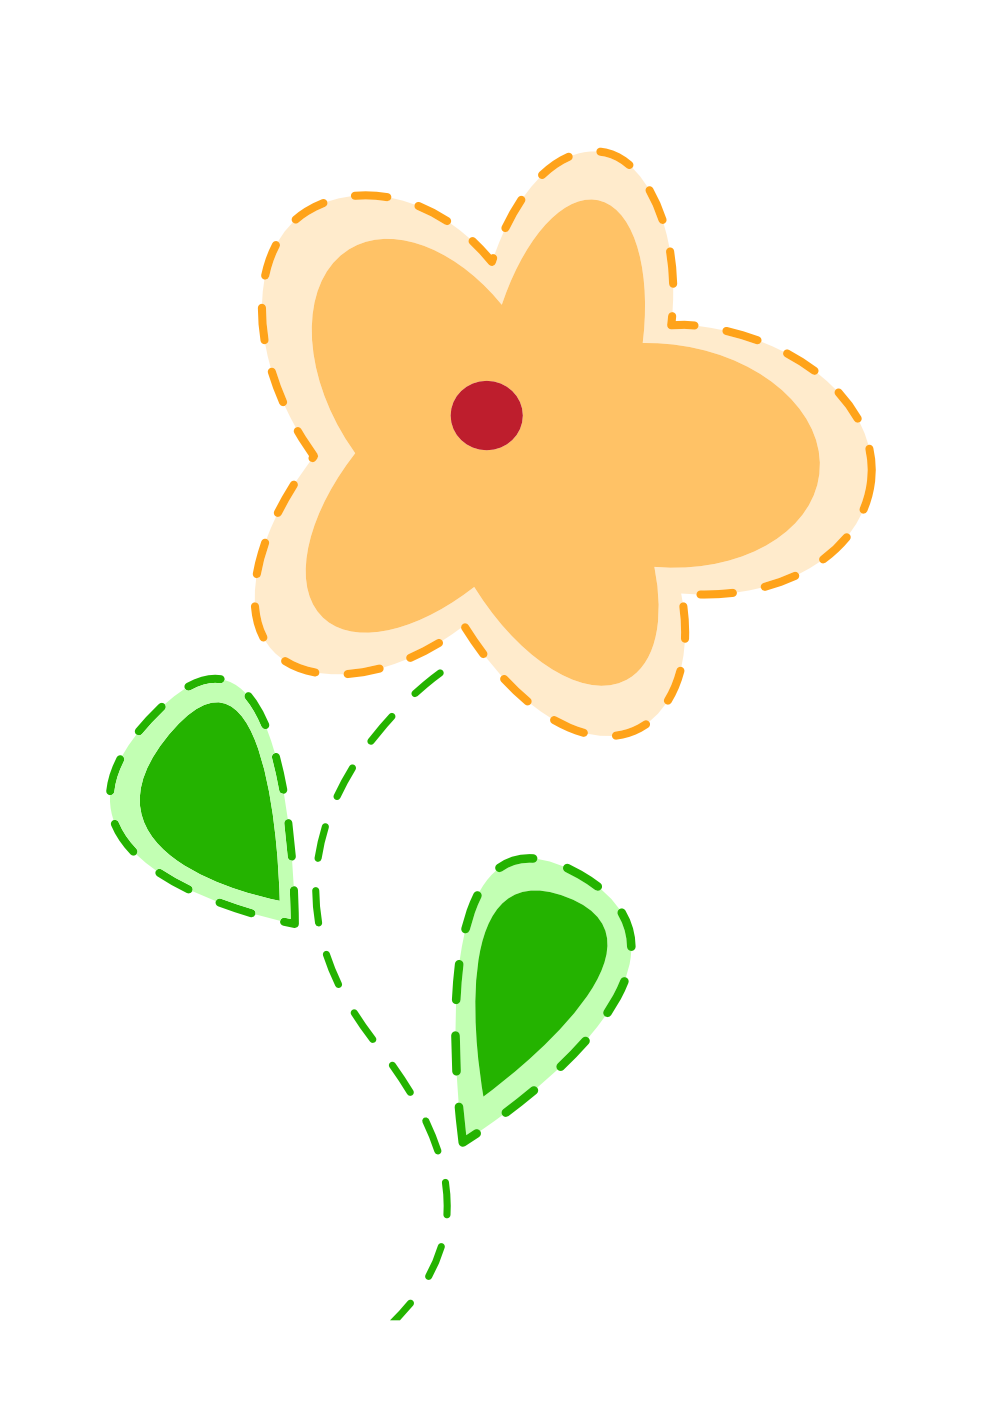 Easter clipart tall flower png graphic download Easter clipart tall flower - ClipartFest graphic download